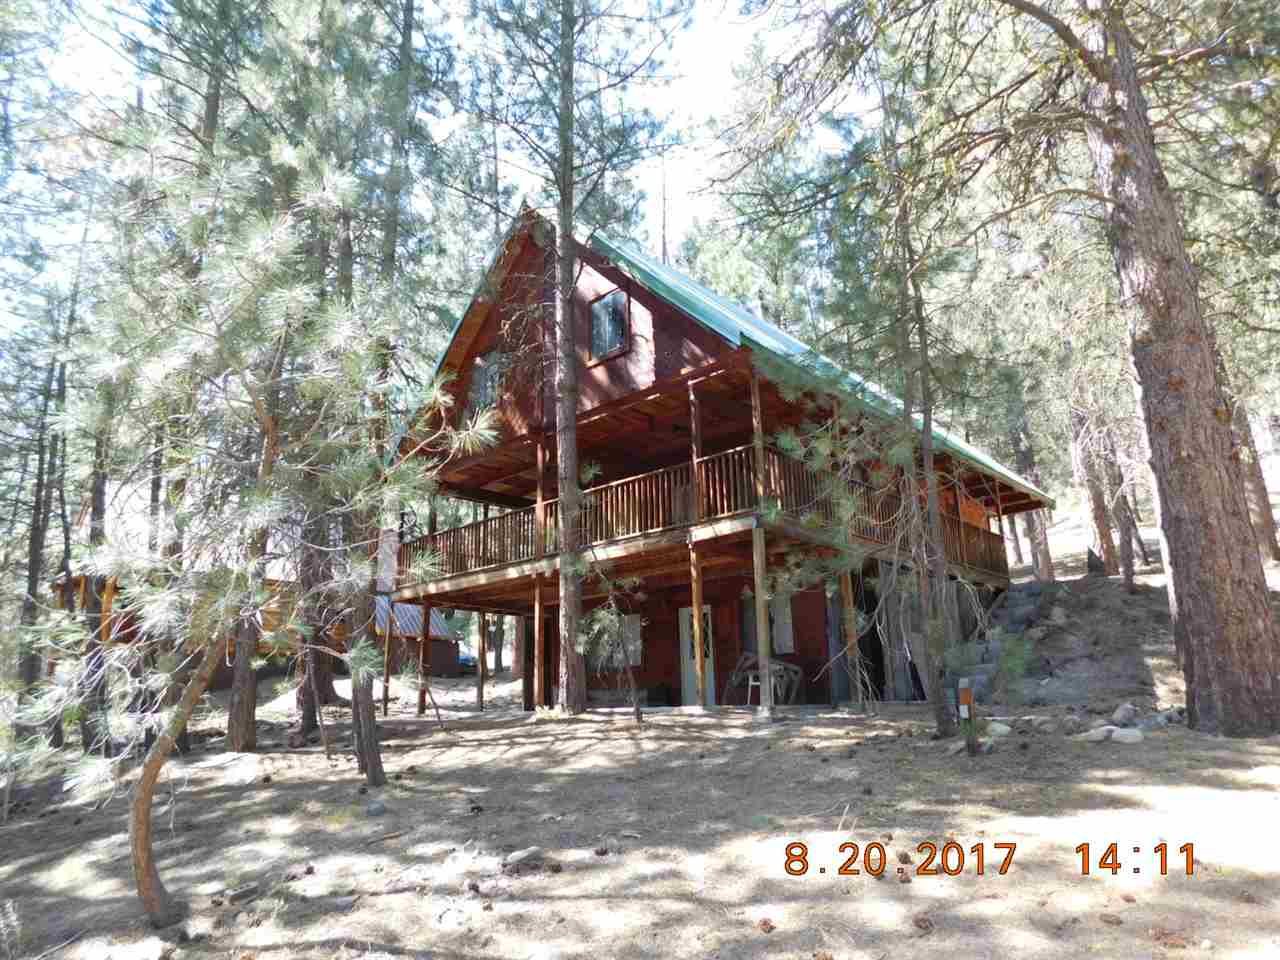 Single Family Home for Sale at 4353 N Pine Featherville Road 4353 N Pine Featherville Road Featherville, Idaho 83647